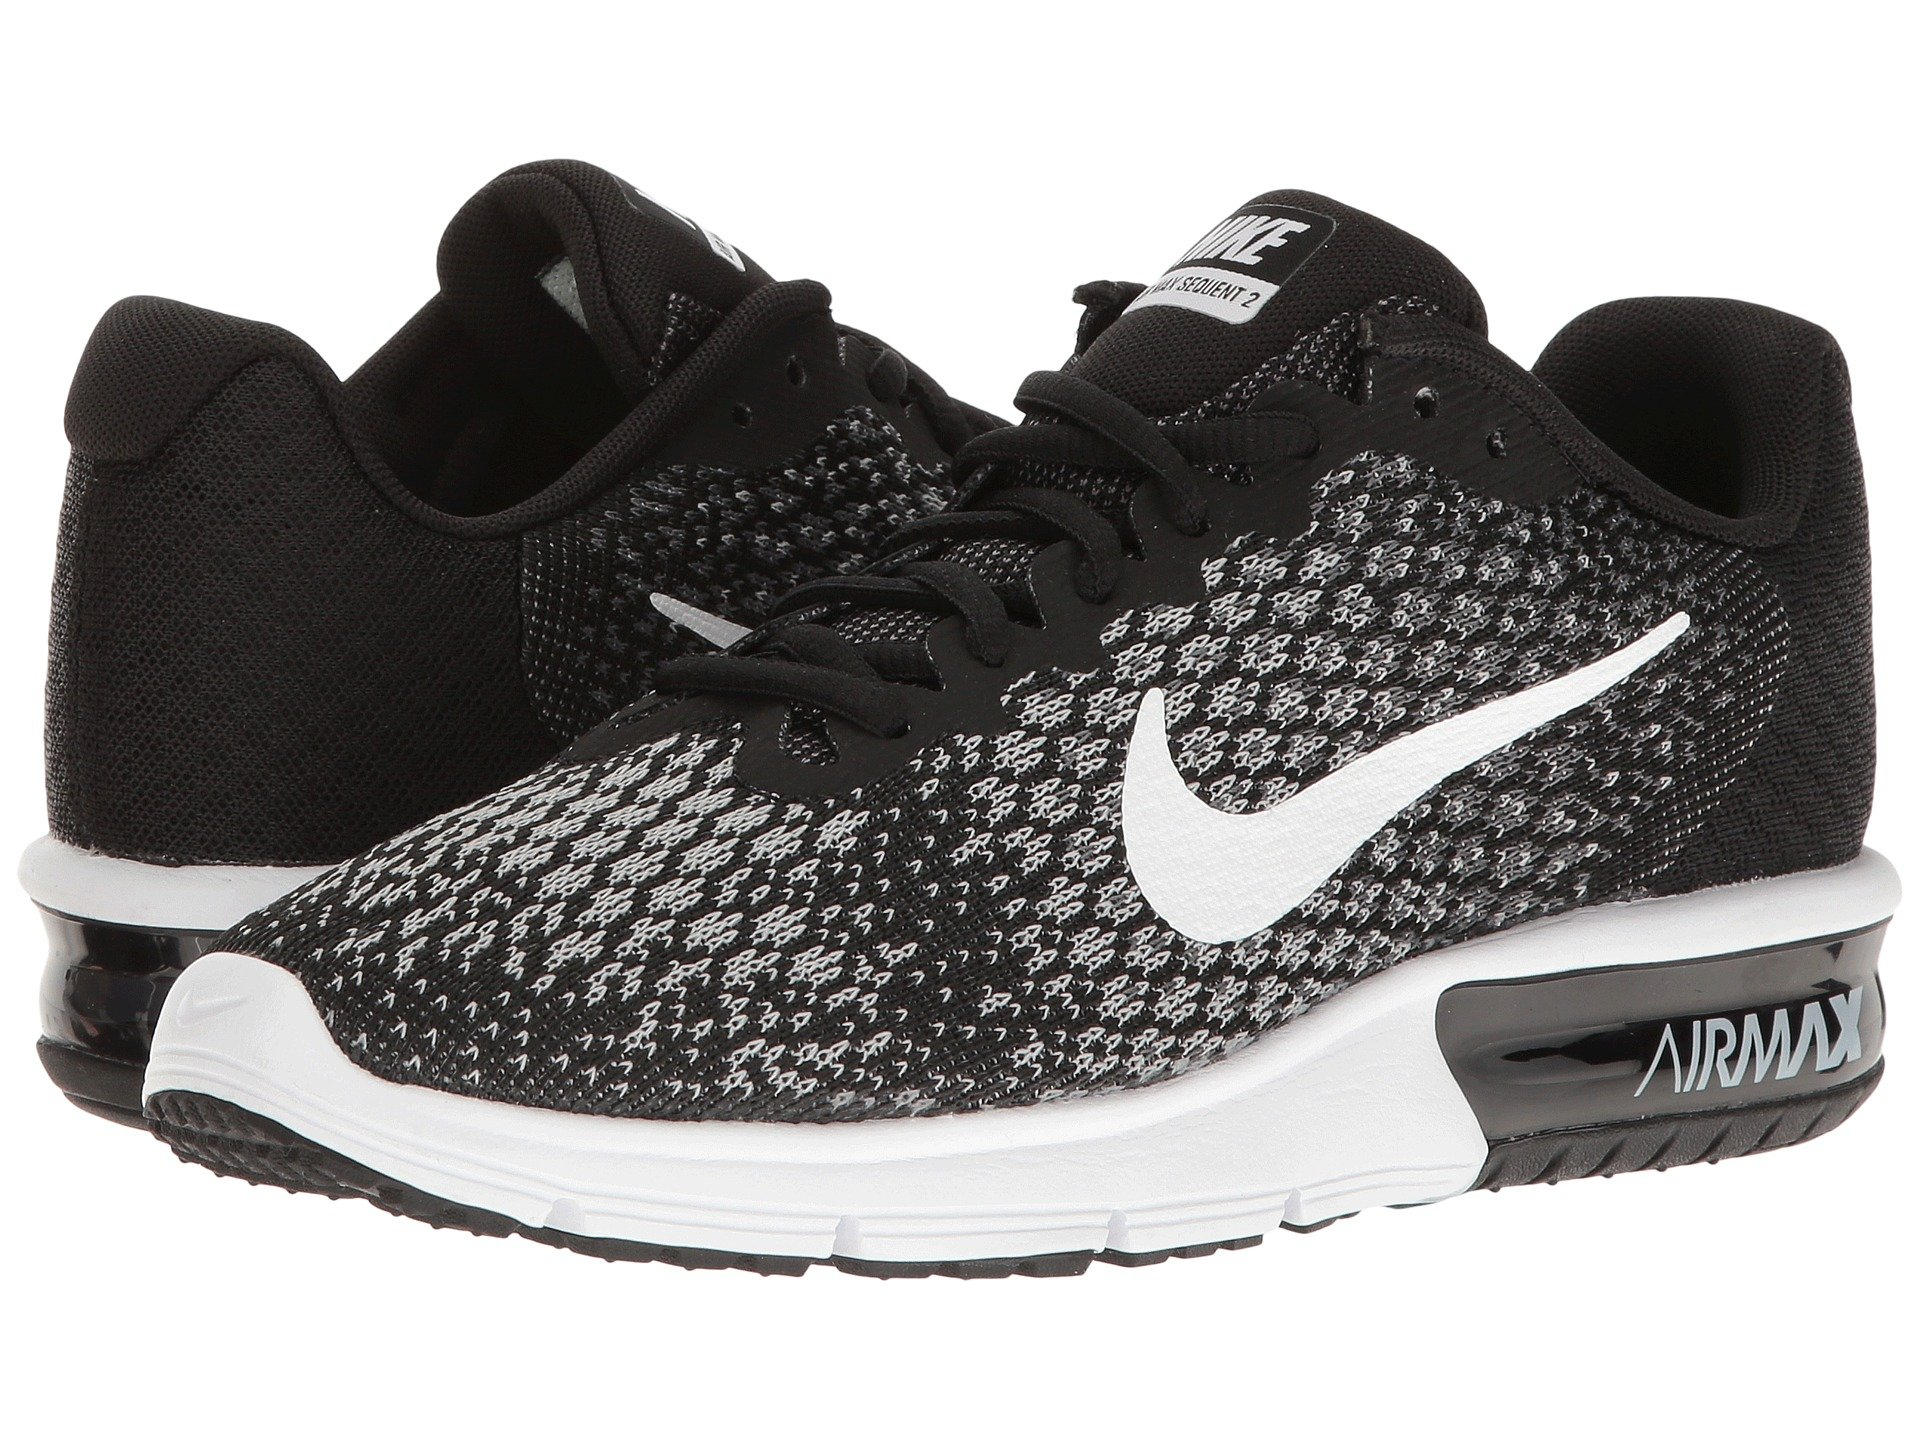 615d8ab694 ... spain nike air max sequent 2 black white dark grey wolf grey 4c84e ffd9a